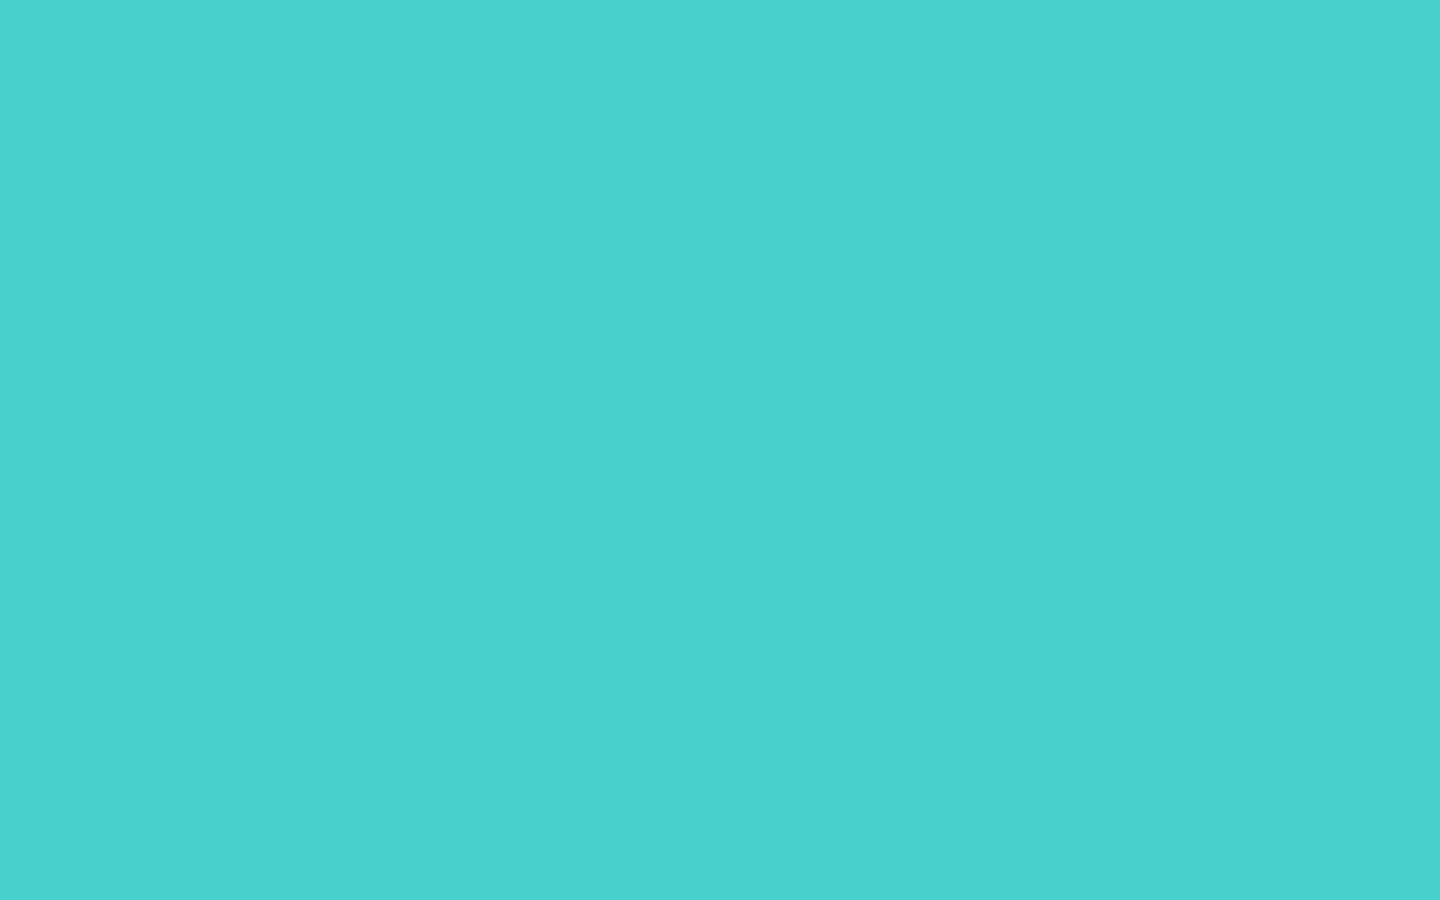 1440x900 Medium Turquoise Solid Color Background